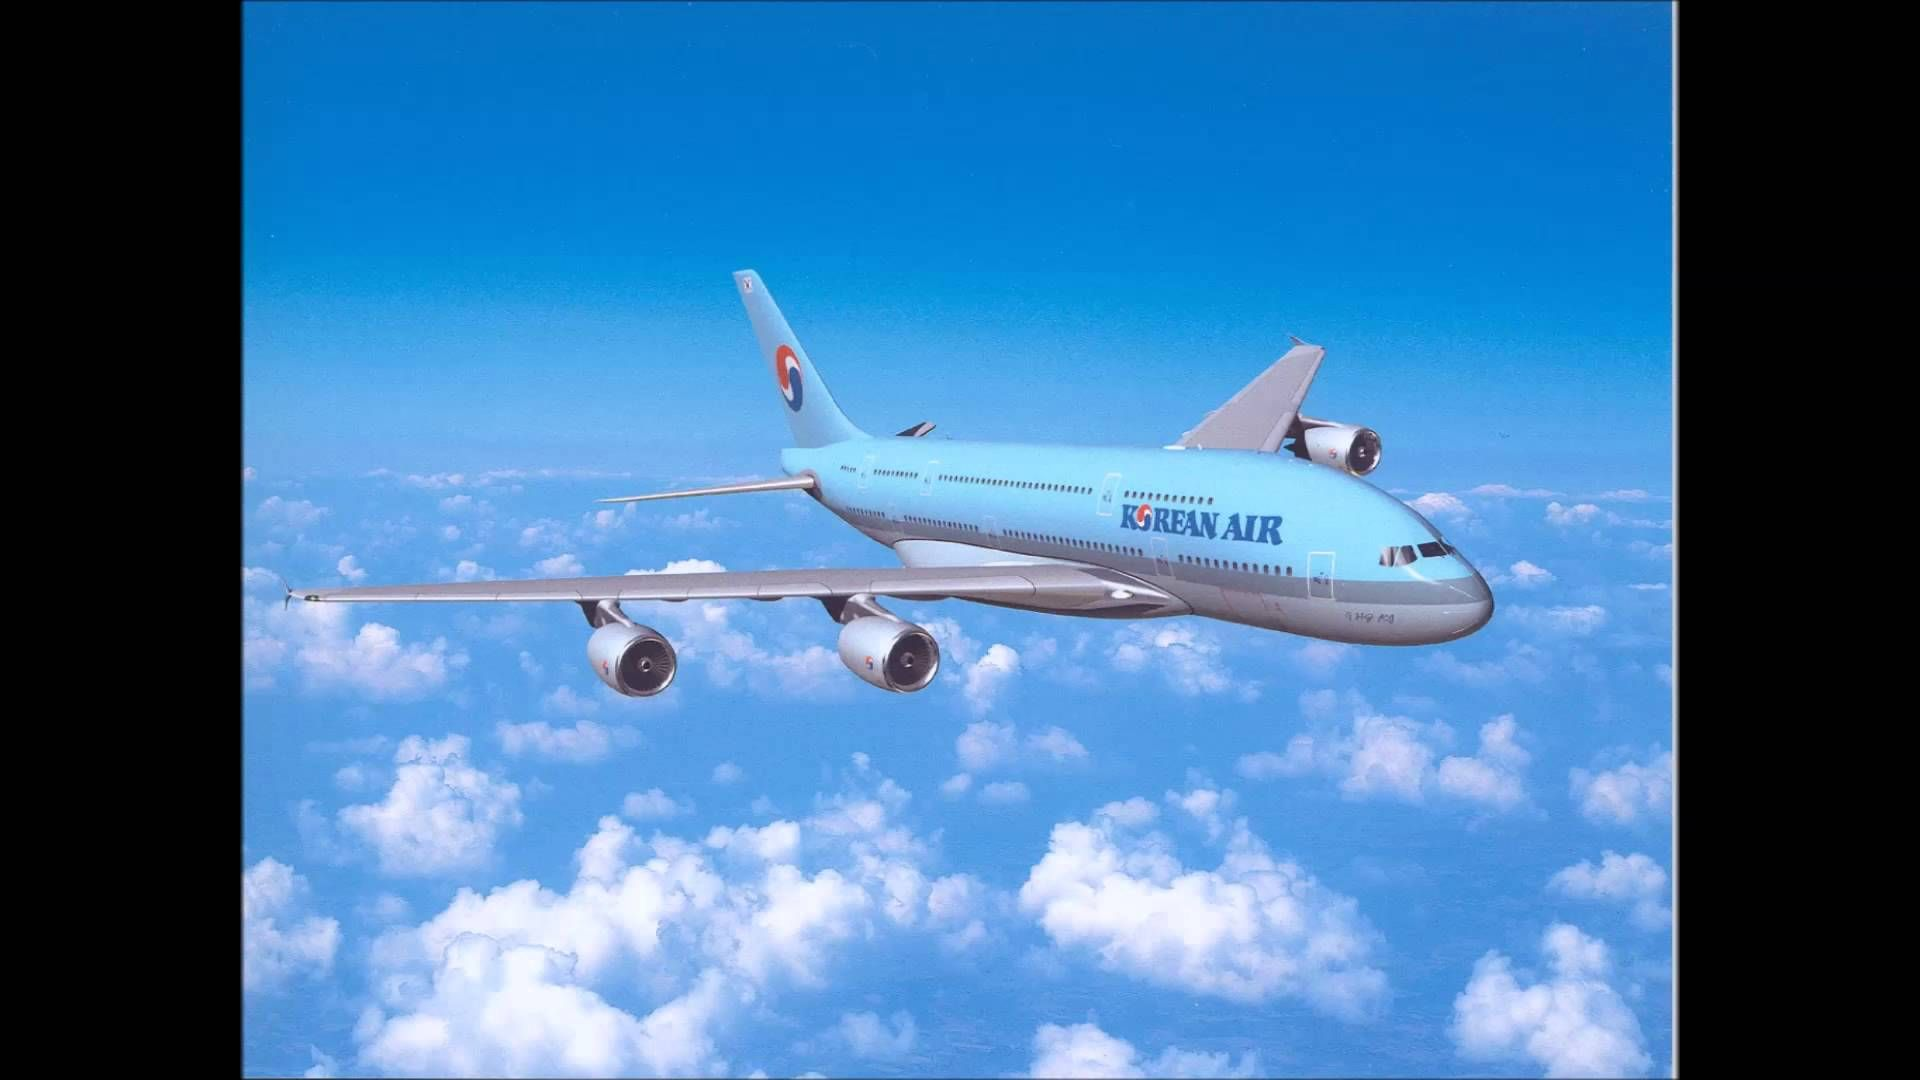 The Top 10 Most Dangerous Airlines 2013